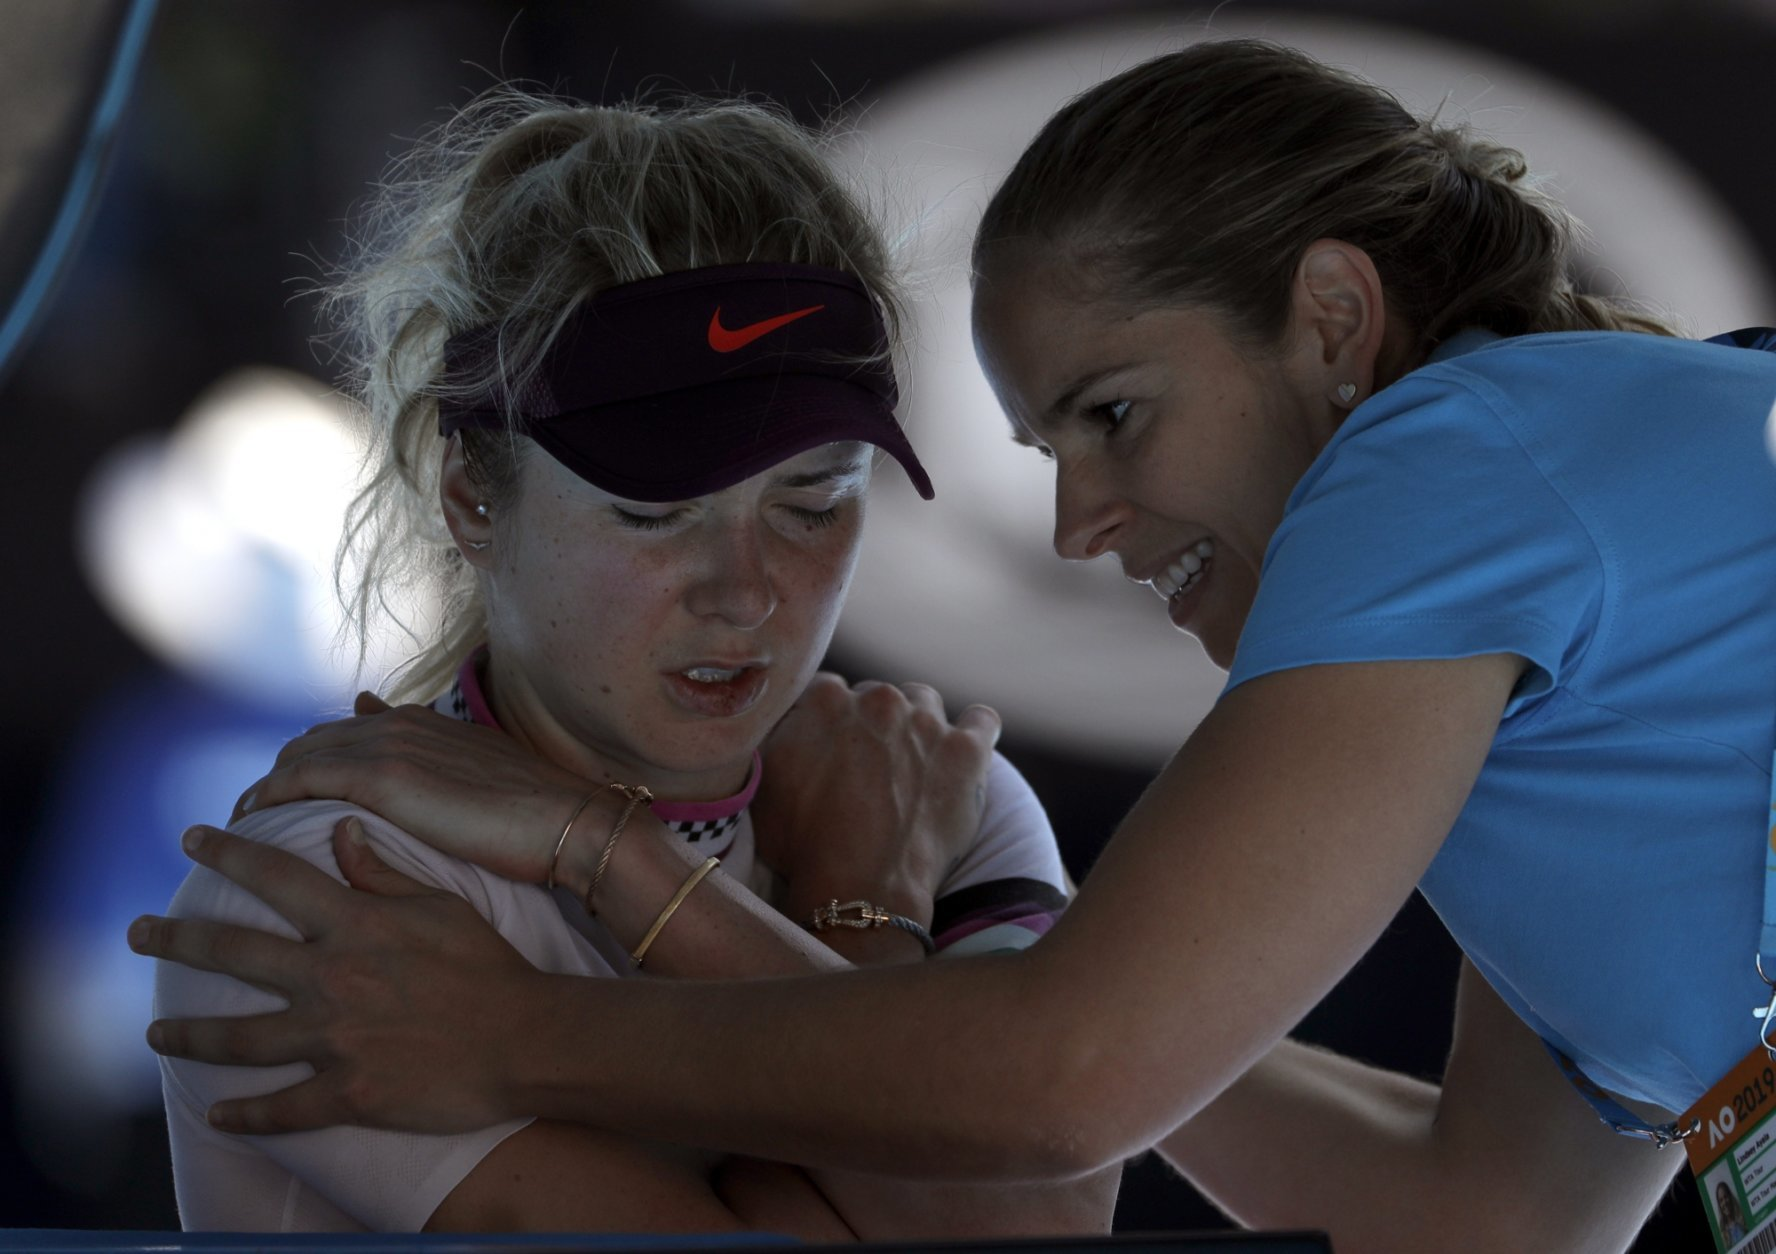 Ukraine's Elina Svitolina receives treatment from a trainer during her quarterfinal against Japan's Naomi Osaka at the Australian Open tennis championships in Melbourne, Australia, Wednesday, Jan. 23, 2019. (AP Photo/Mark Schiefelbein)